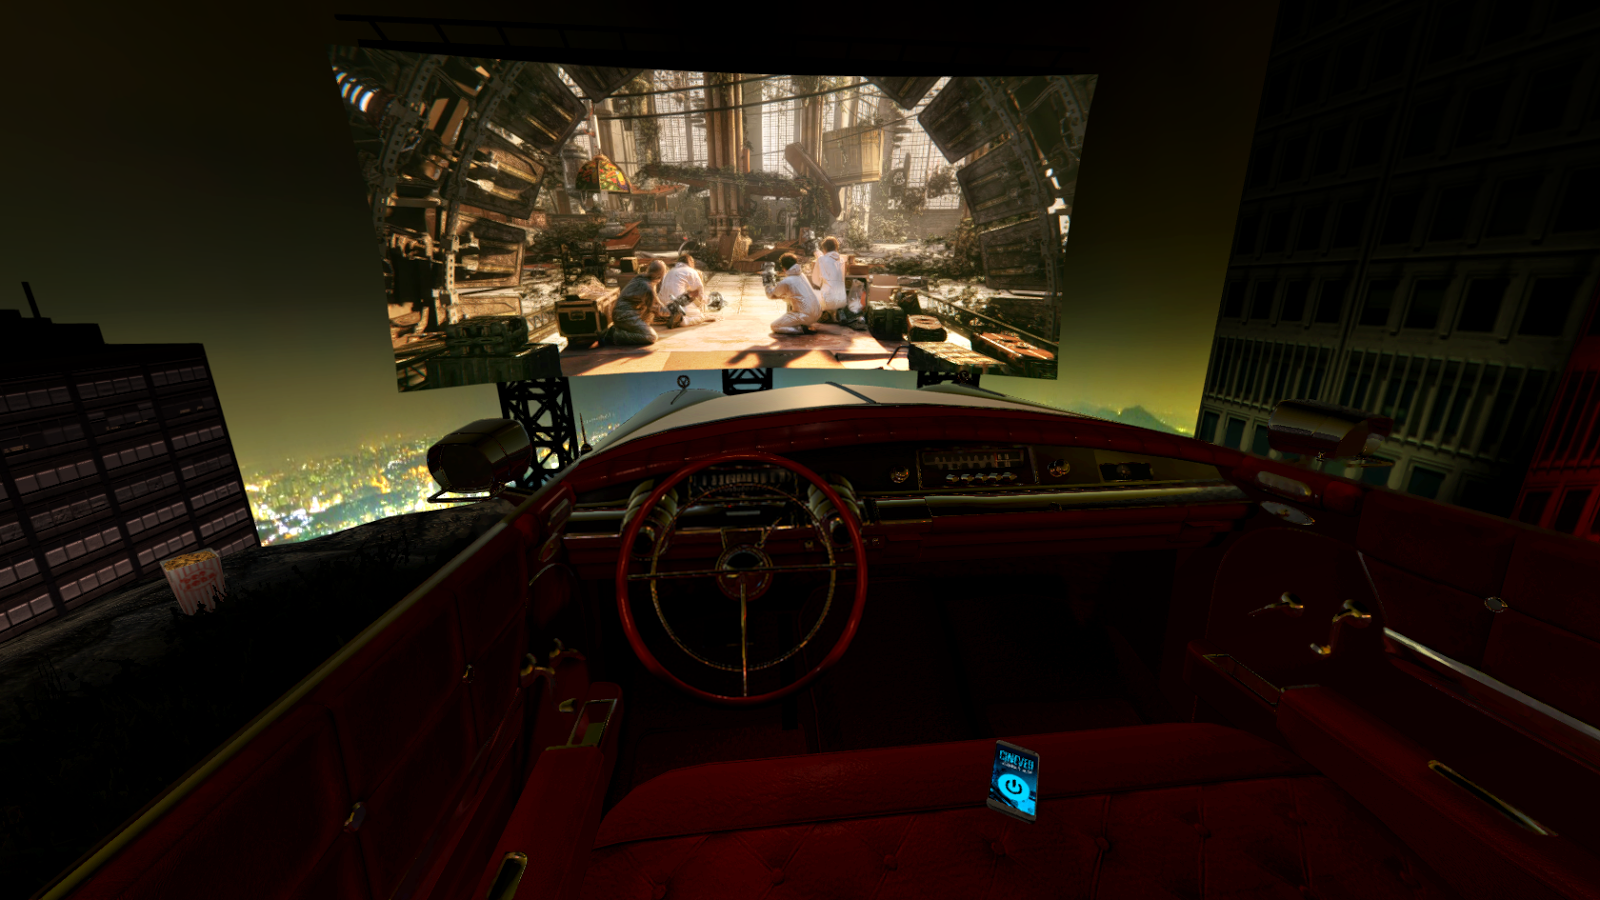 3352dadb5f 1960 Drive-in Theater - CINEVEO - VR Cinema Player 1.9.5 screenshot 1 ...